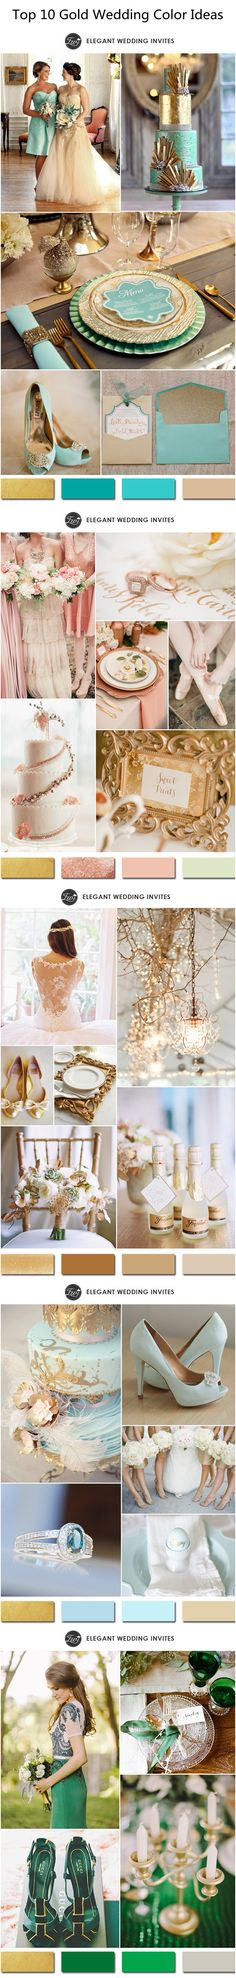 Top 10 Gold Wedding Color Ideas 2015 Trends #weddingcolors #elegantweddinginvites